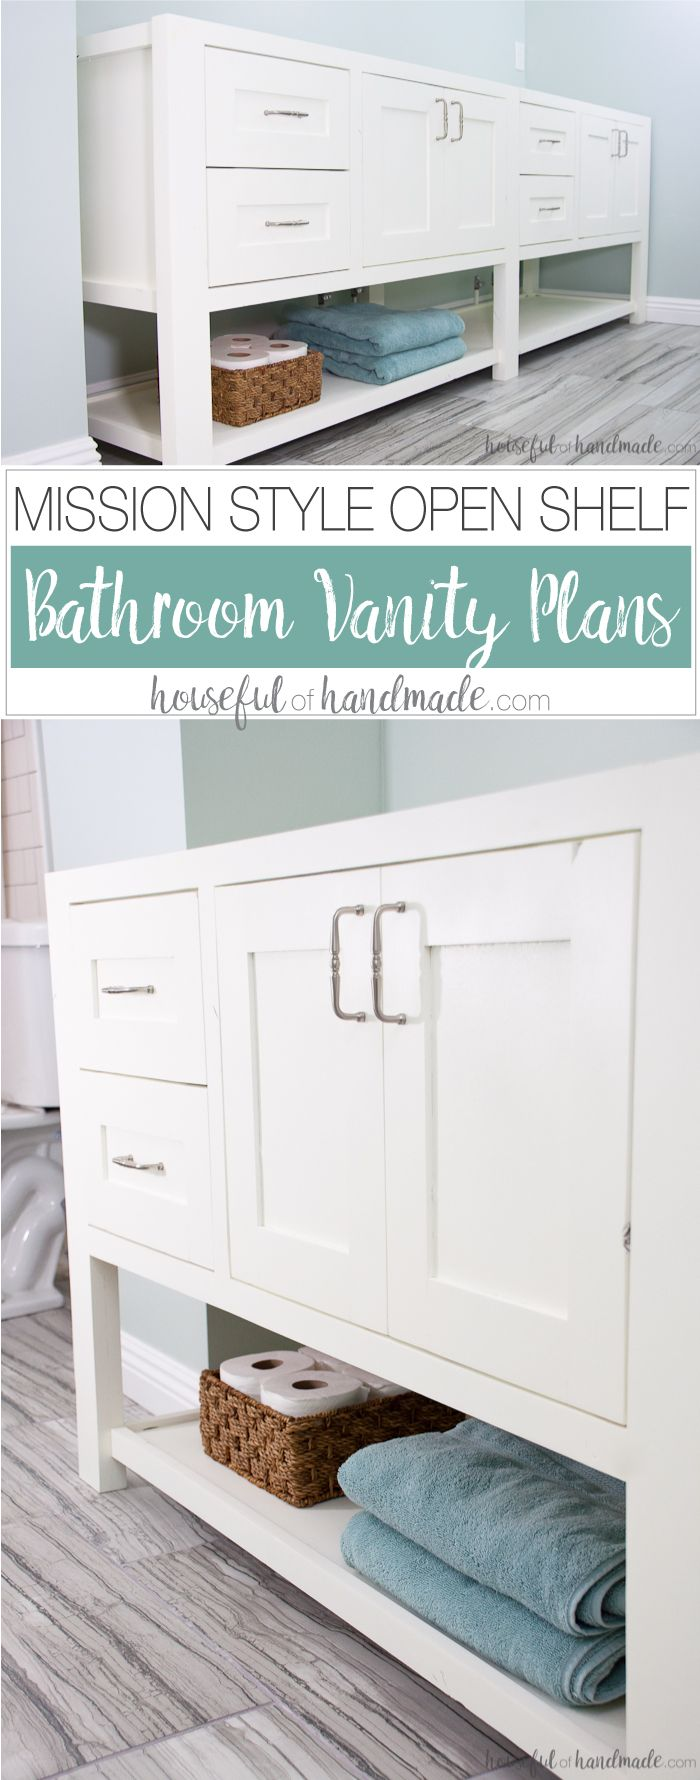 Mission style open shelf bathroom vanity build plans double mission style open shelf bathroom vanity build plans amipublicfo Image collections